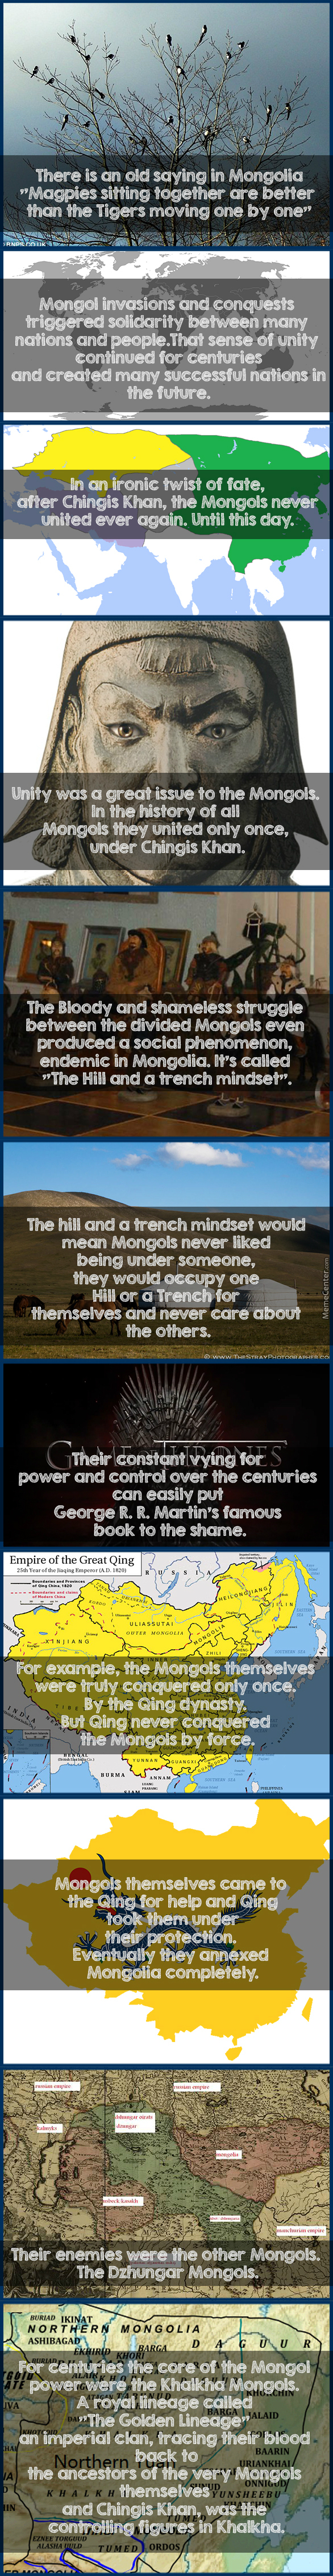 Mongol Facts #5-1, To Be Continued